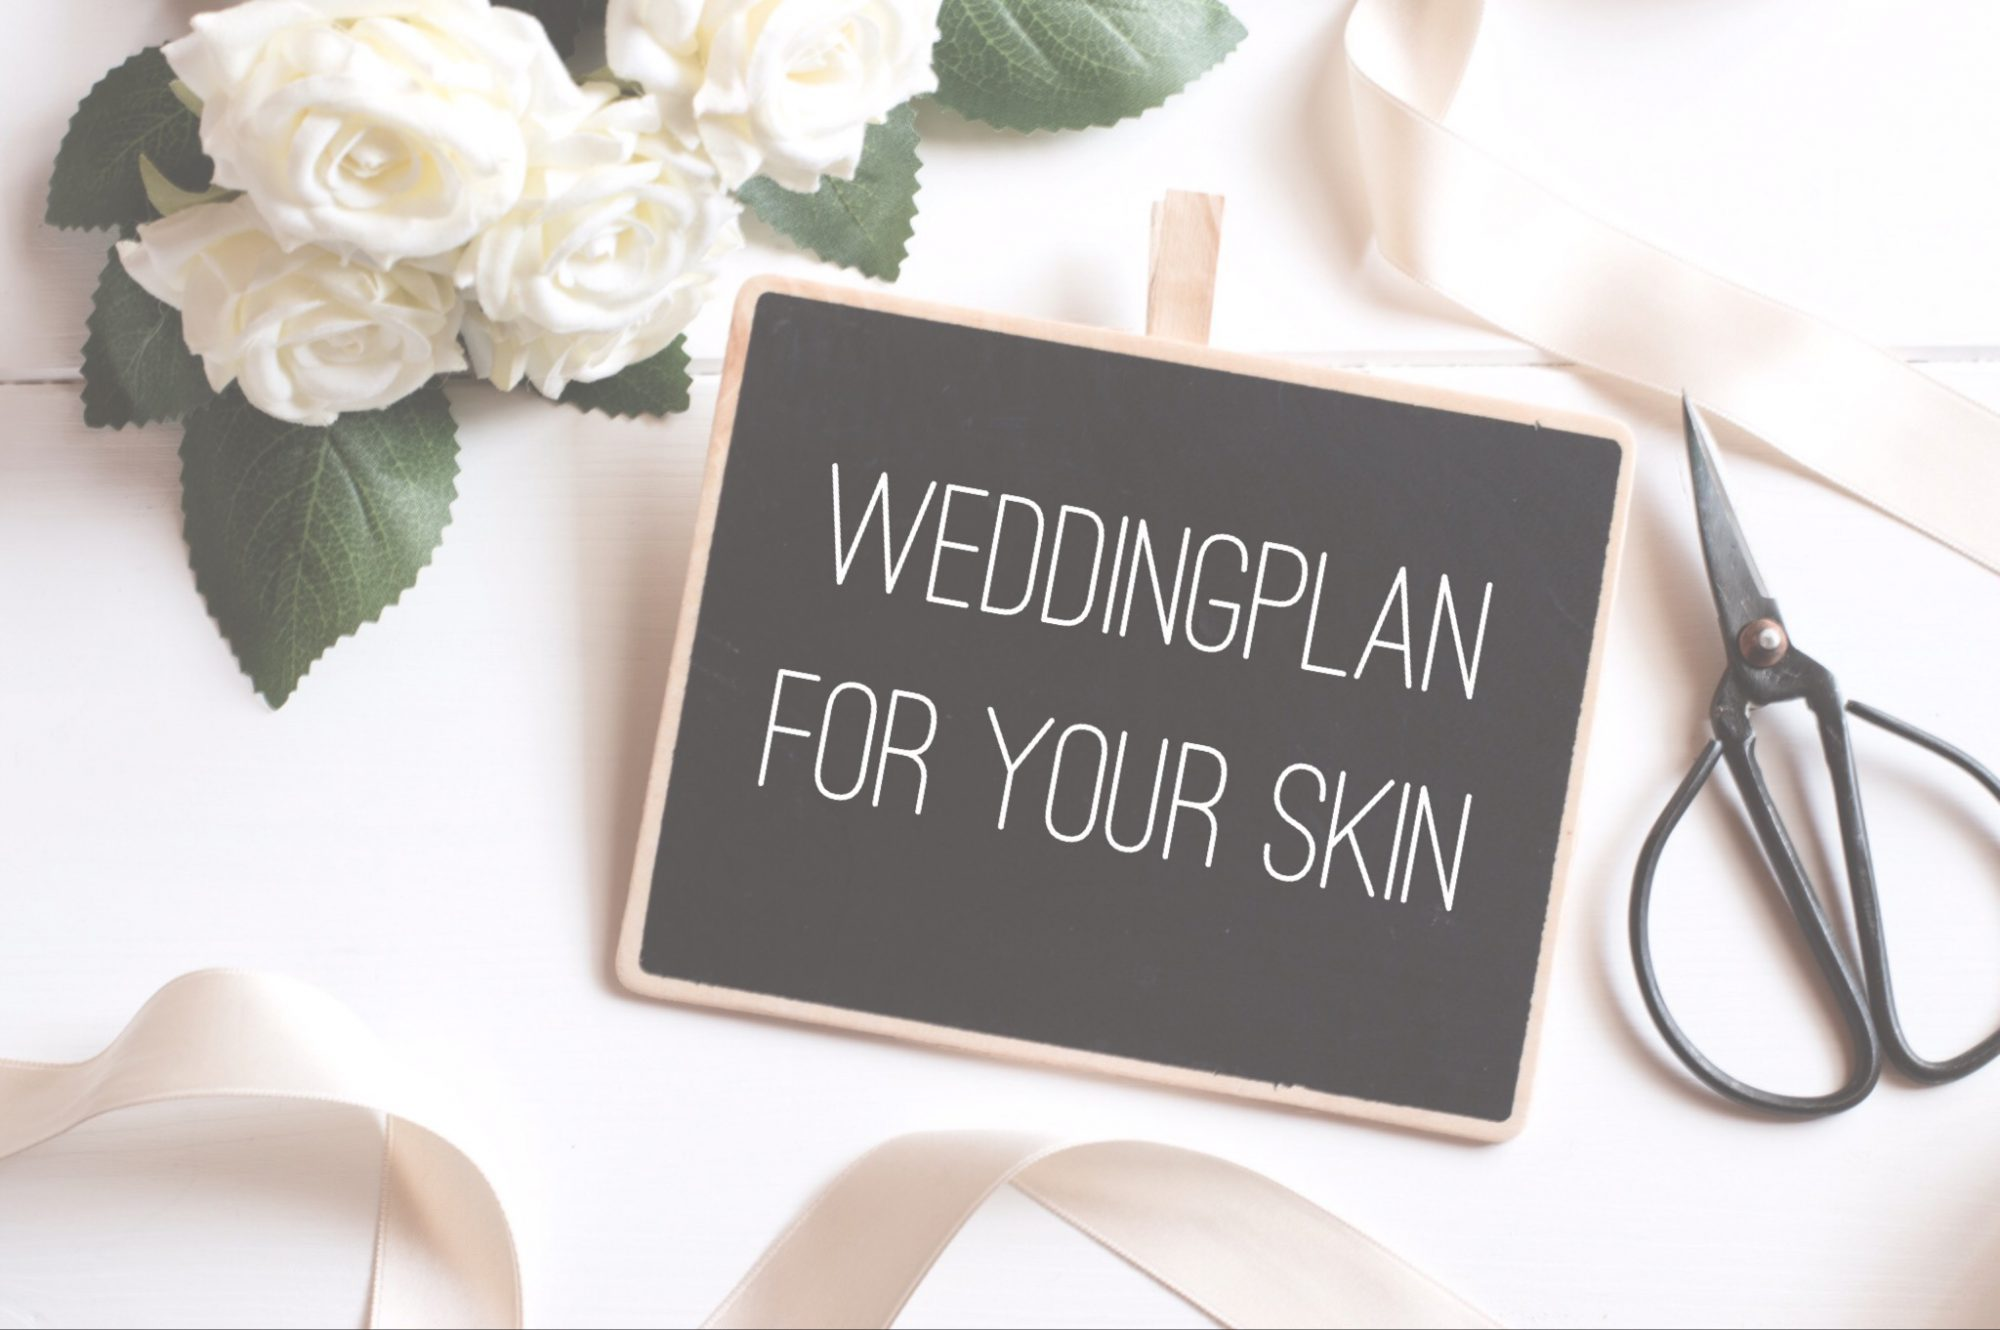 Wedding Plan for your skin